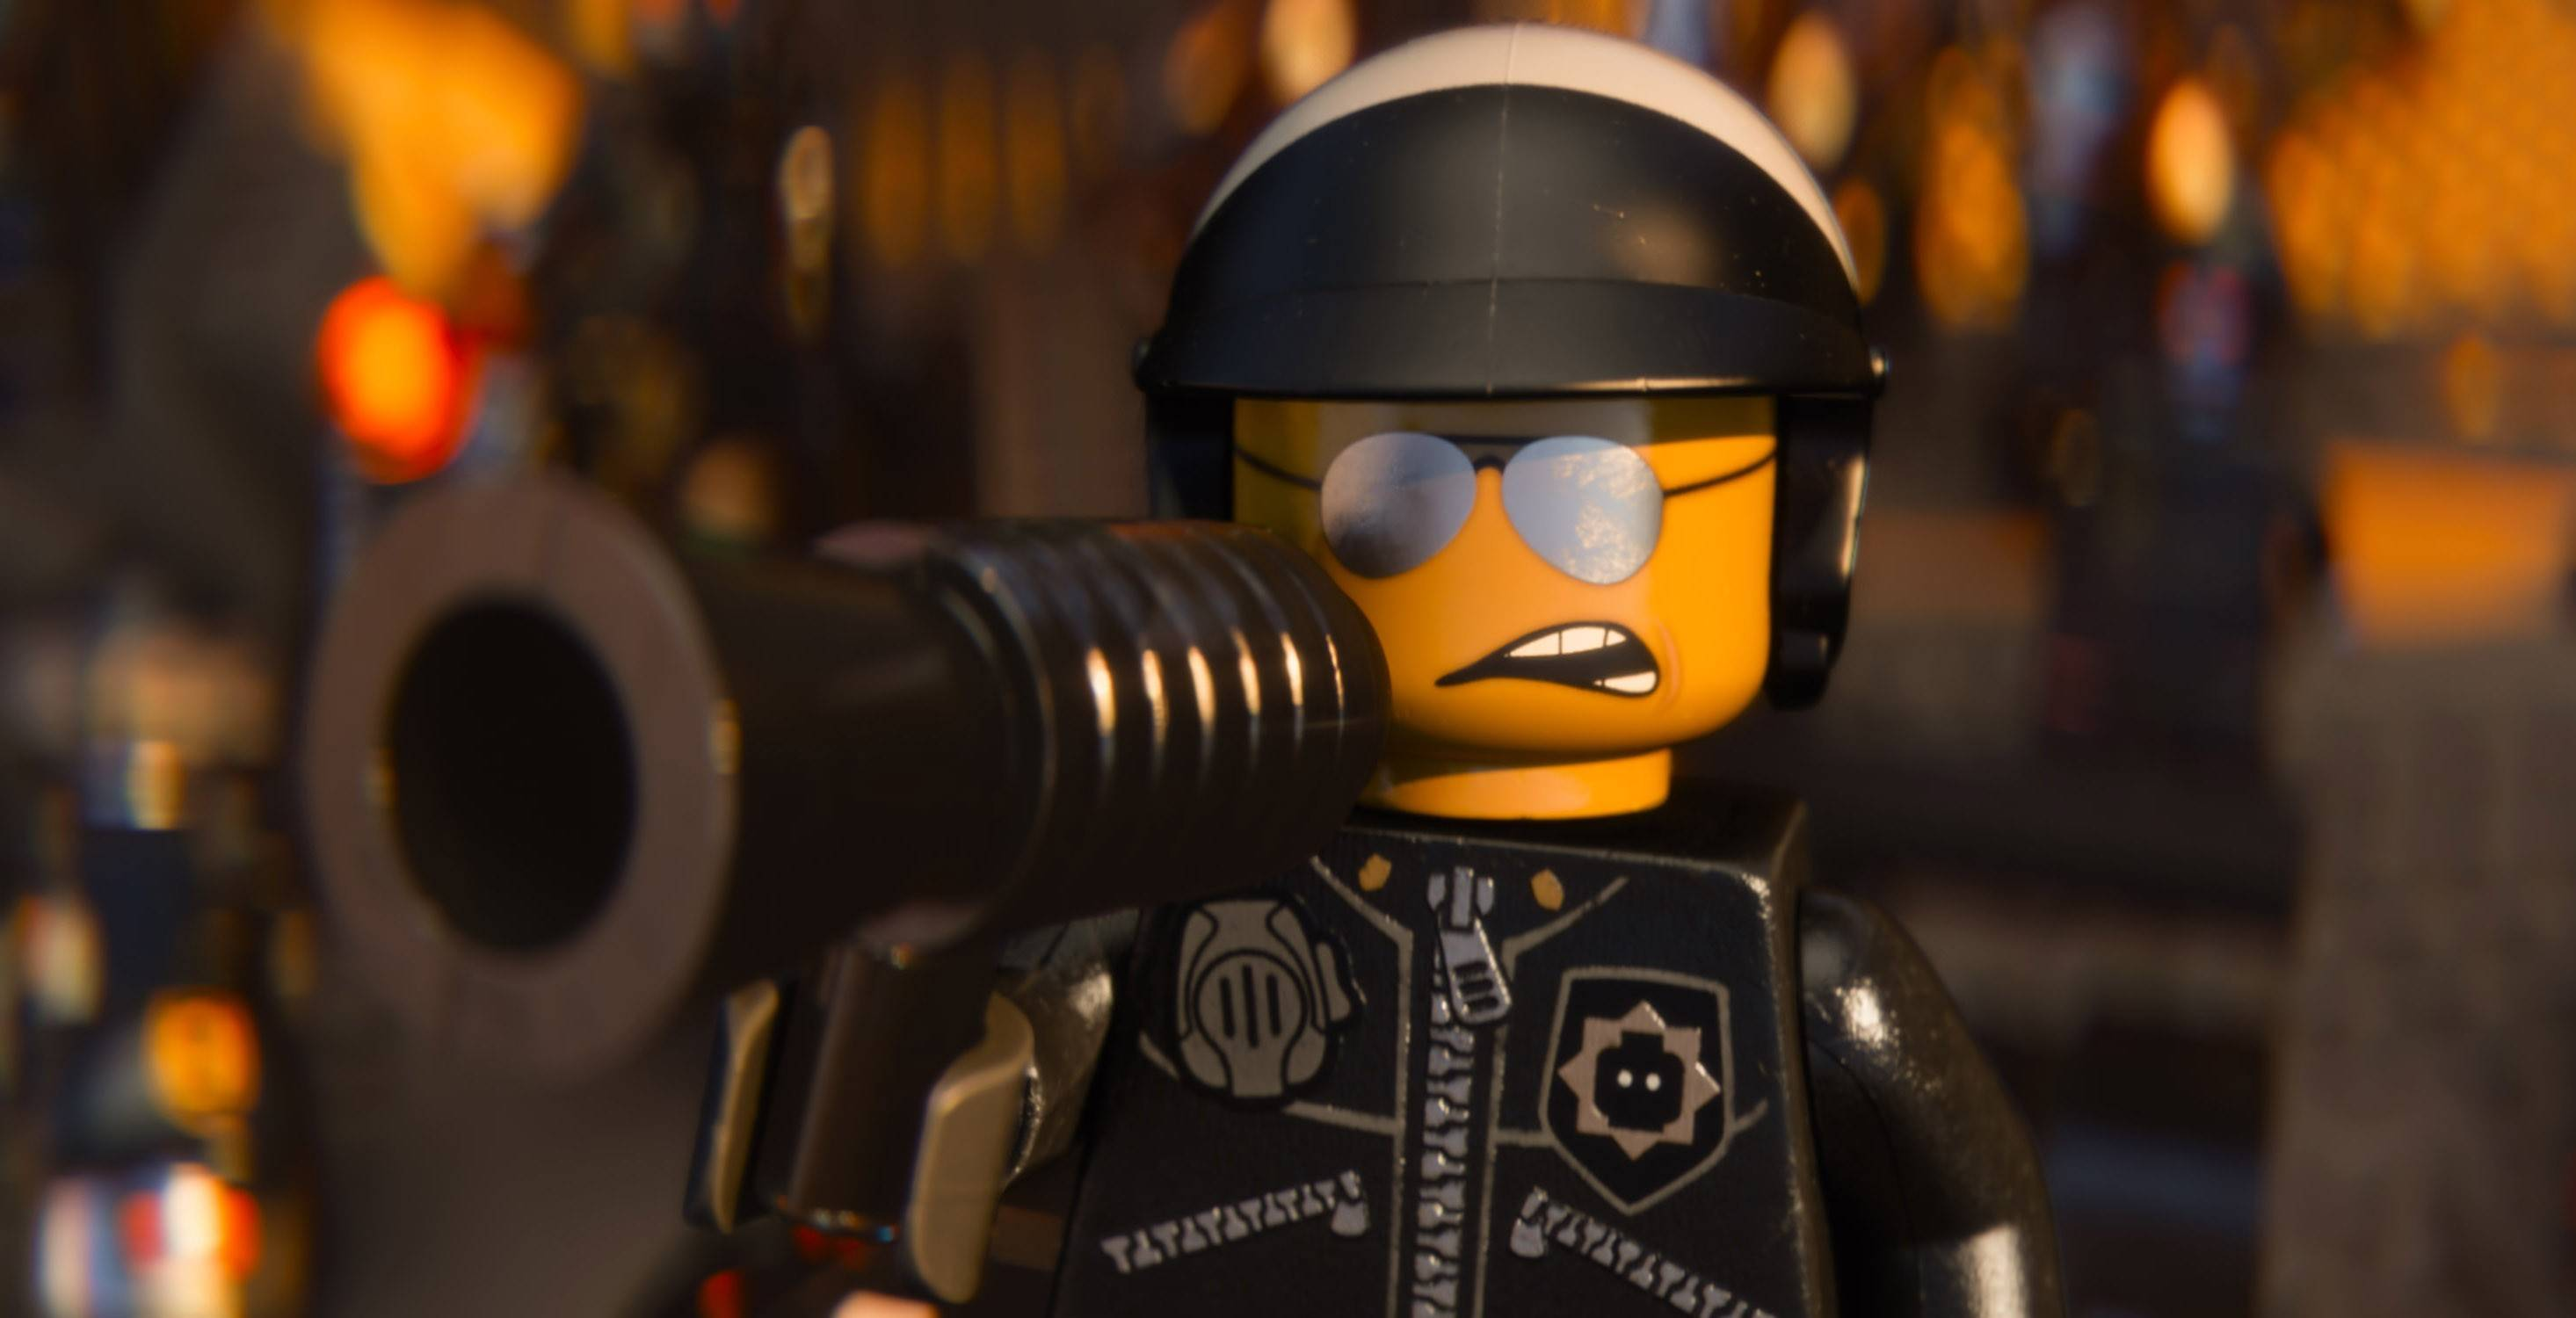 """The Lego Movie"" one of the top movies this year was launched in spring, not summer."